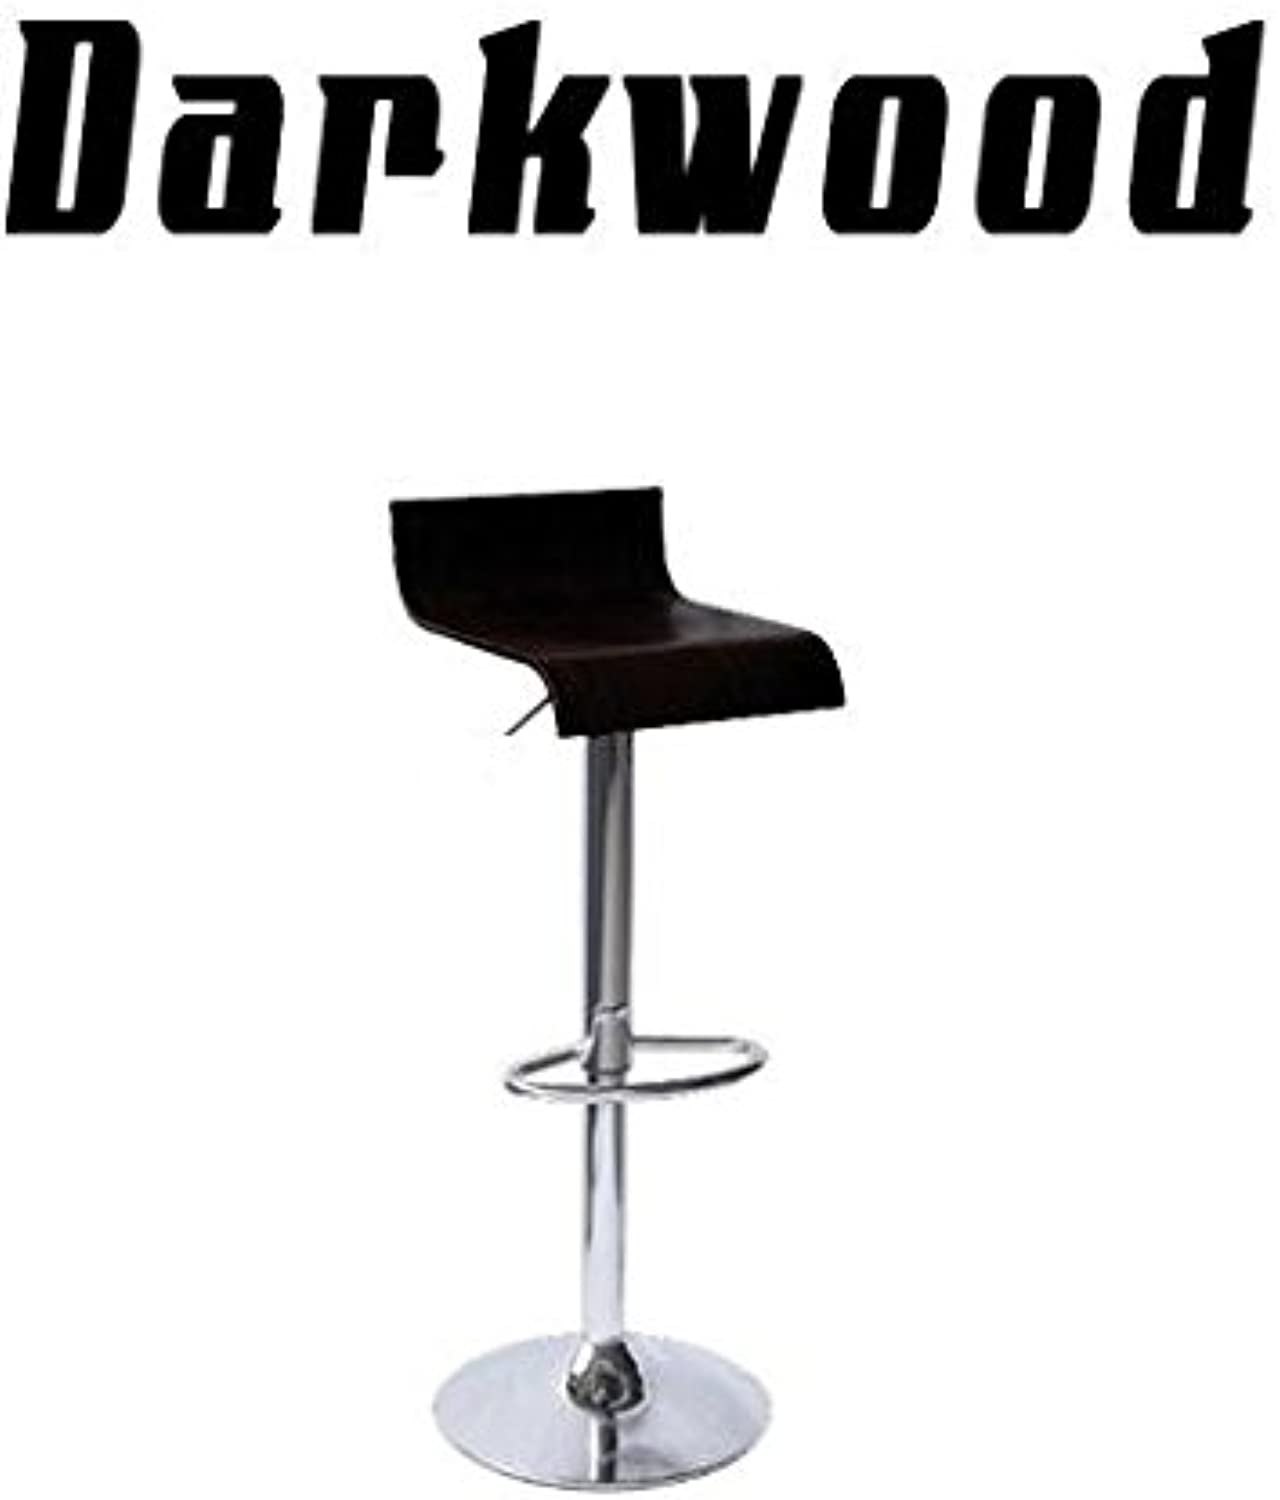 Darkwood Contemporary Wooden Bar Stool - Black